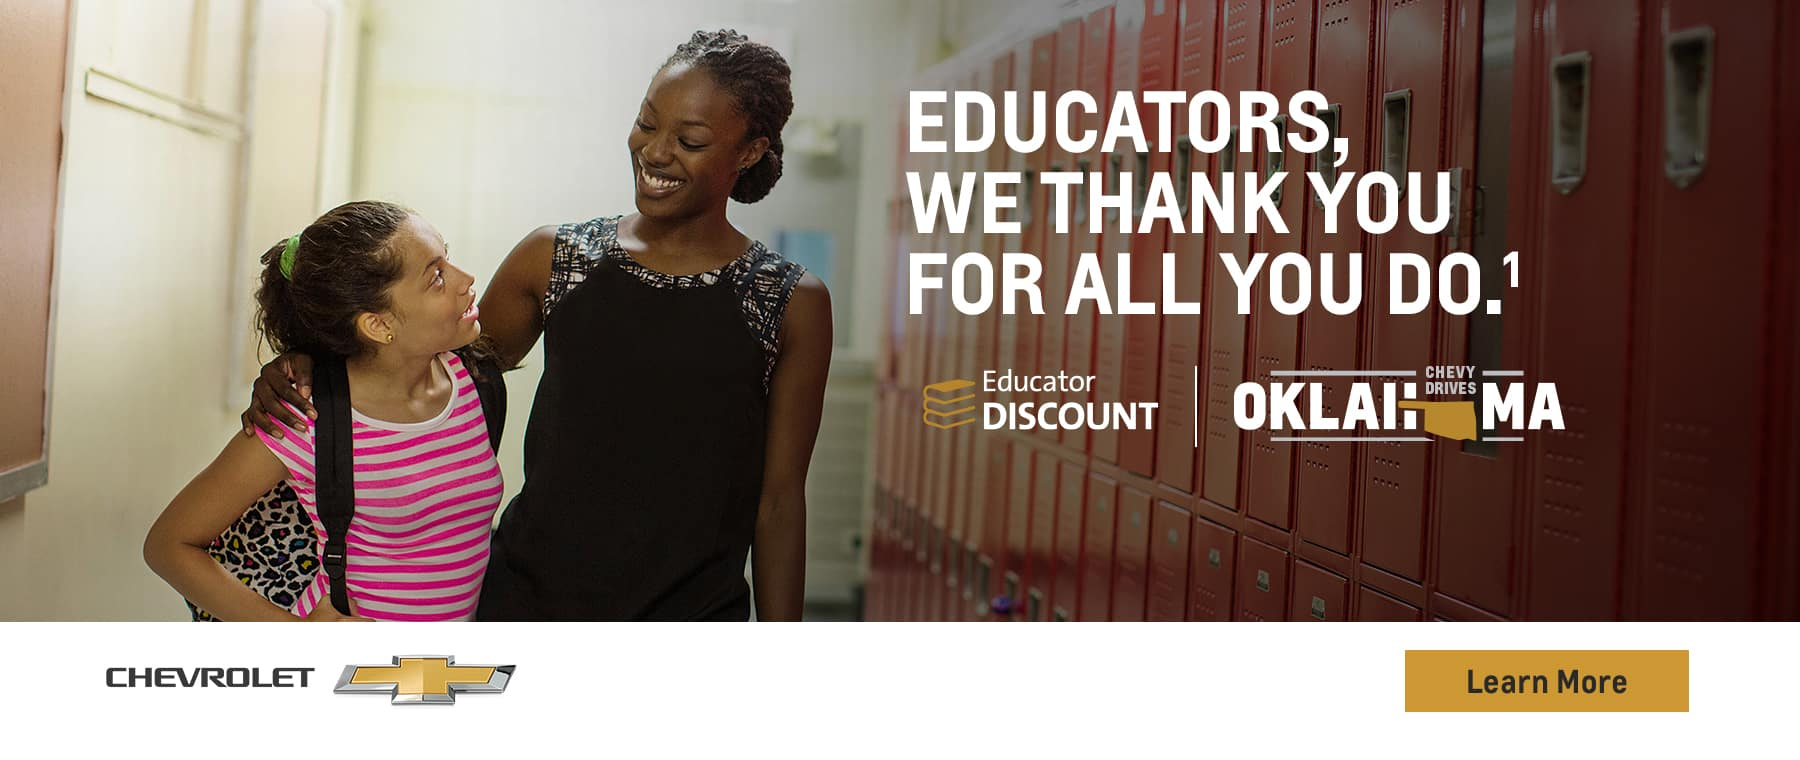 Educators, We thank your for all that you do